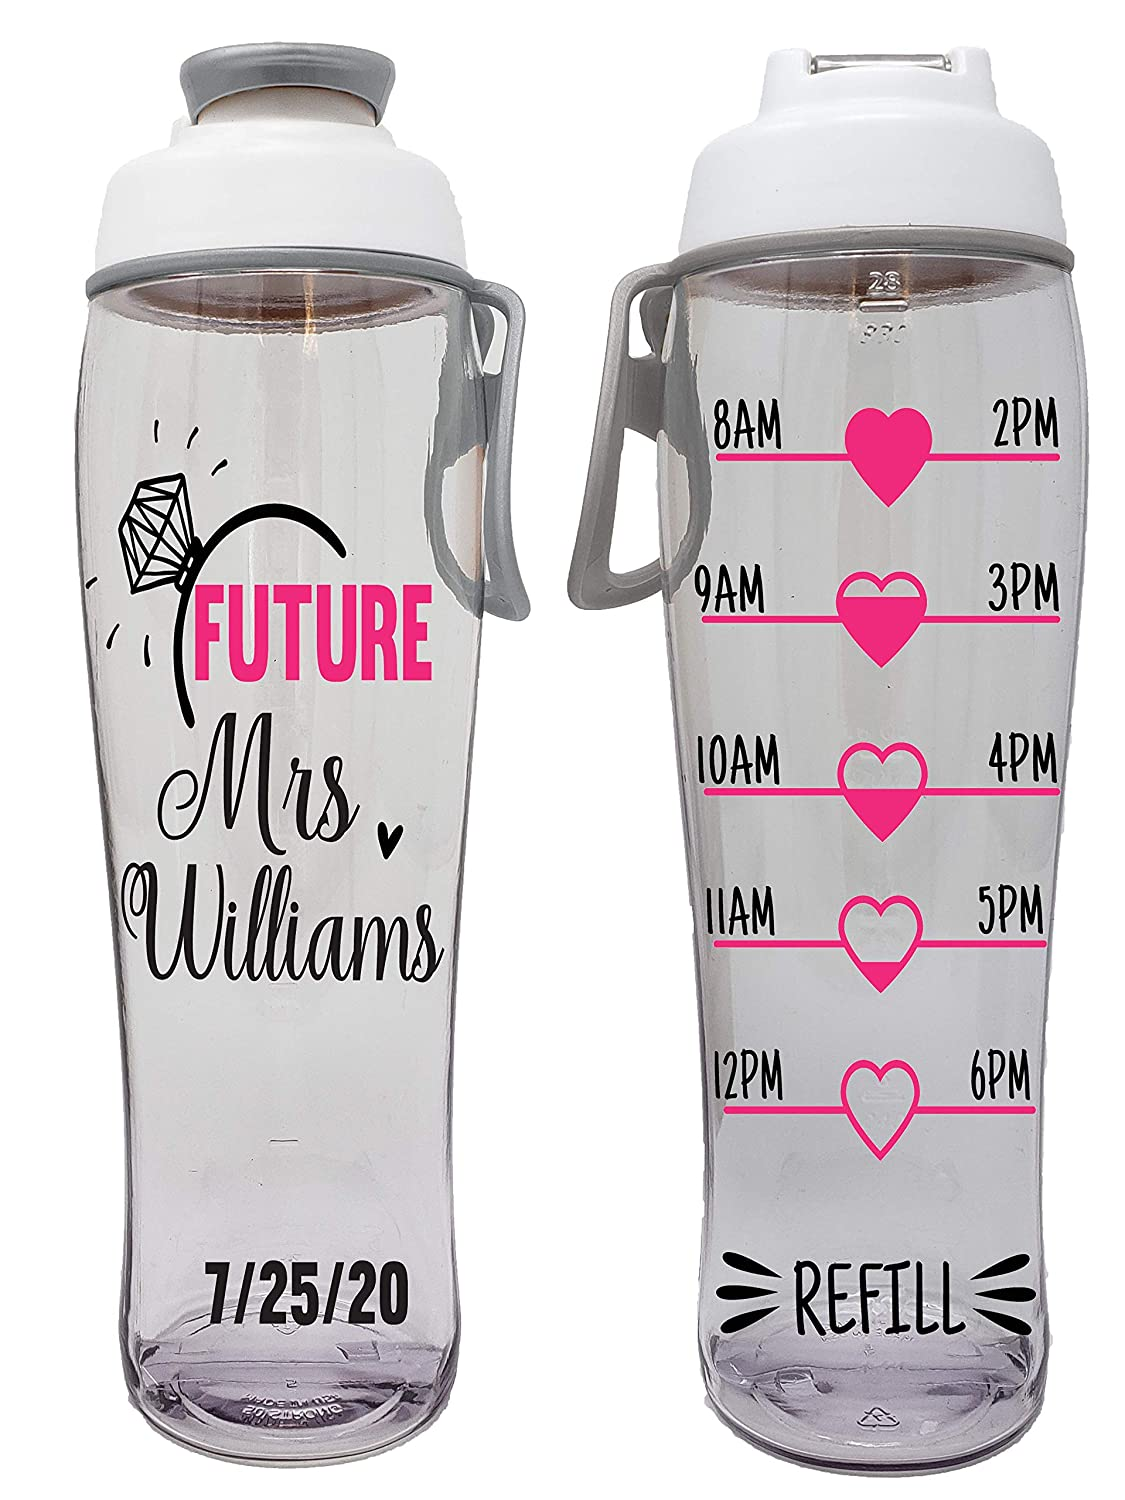 Maid of Honor Bachelorette Parties 50 Strong Bride /& Bridesmaid BPA Free Reusable Water Bottle Bridal Showers Weddings Perfect for Bridesmaids Gifts Brides